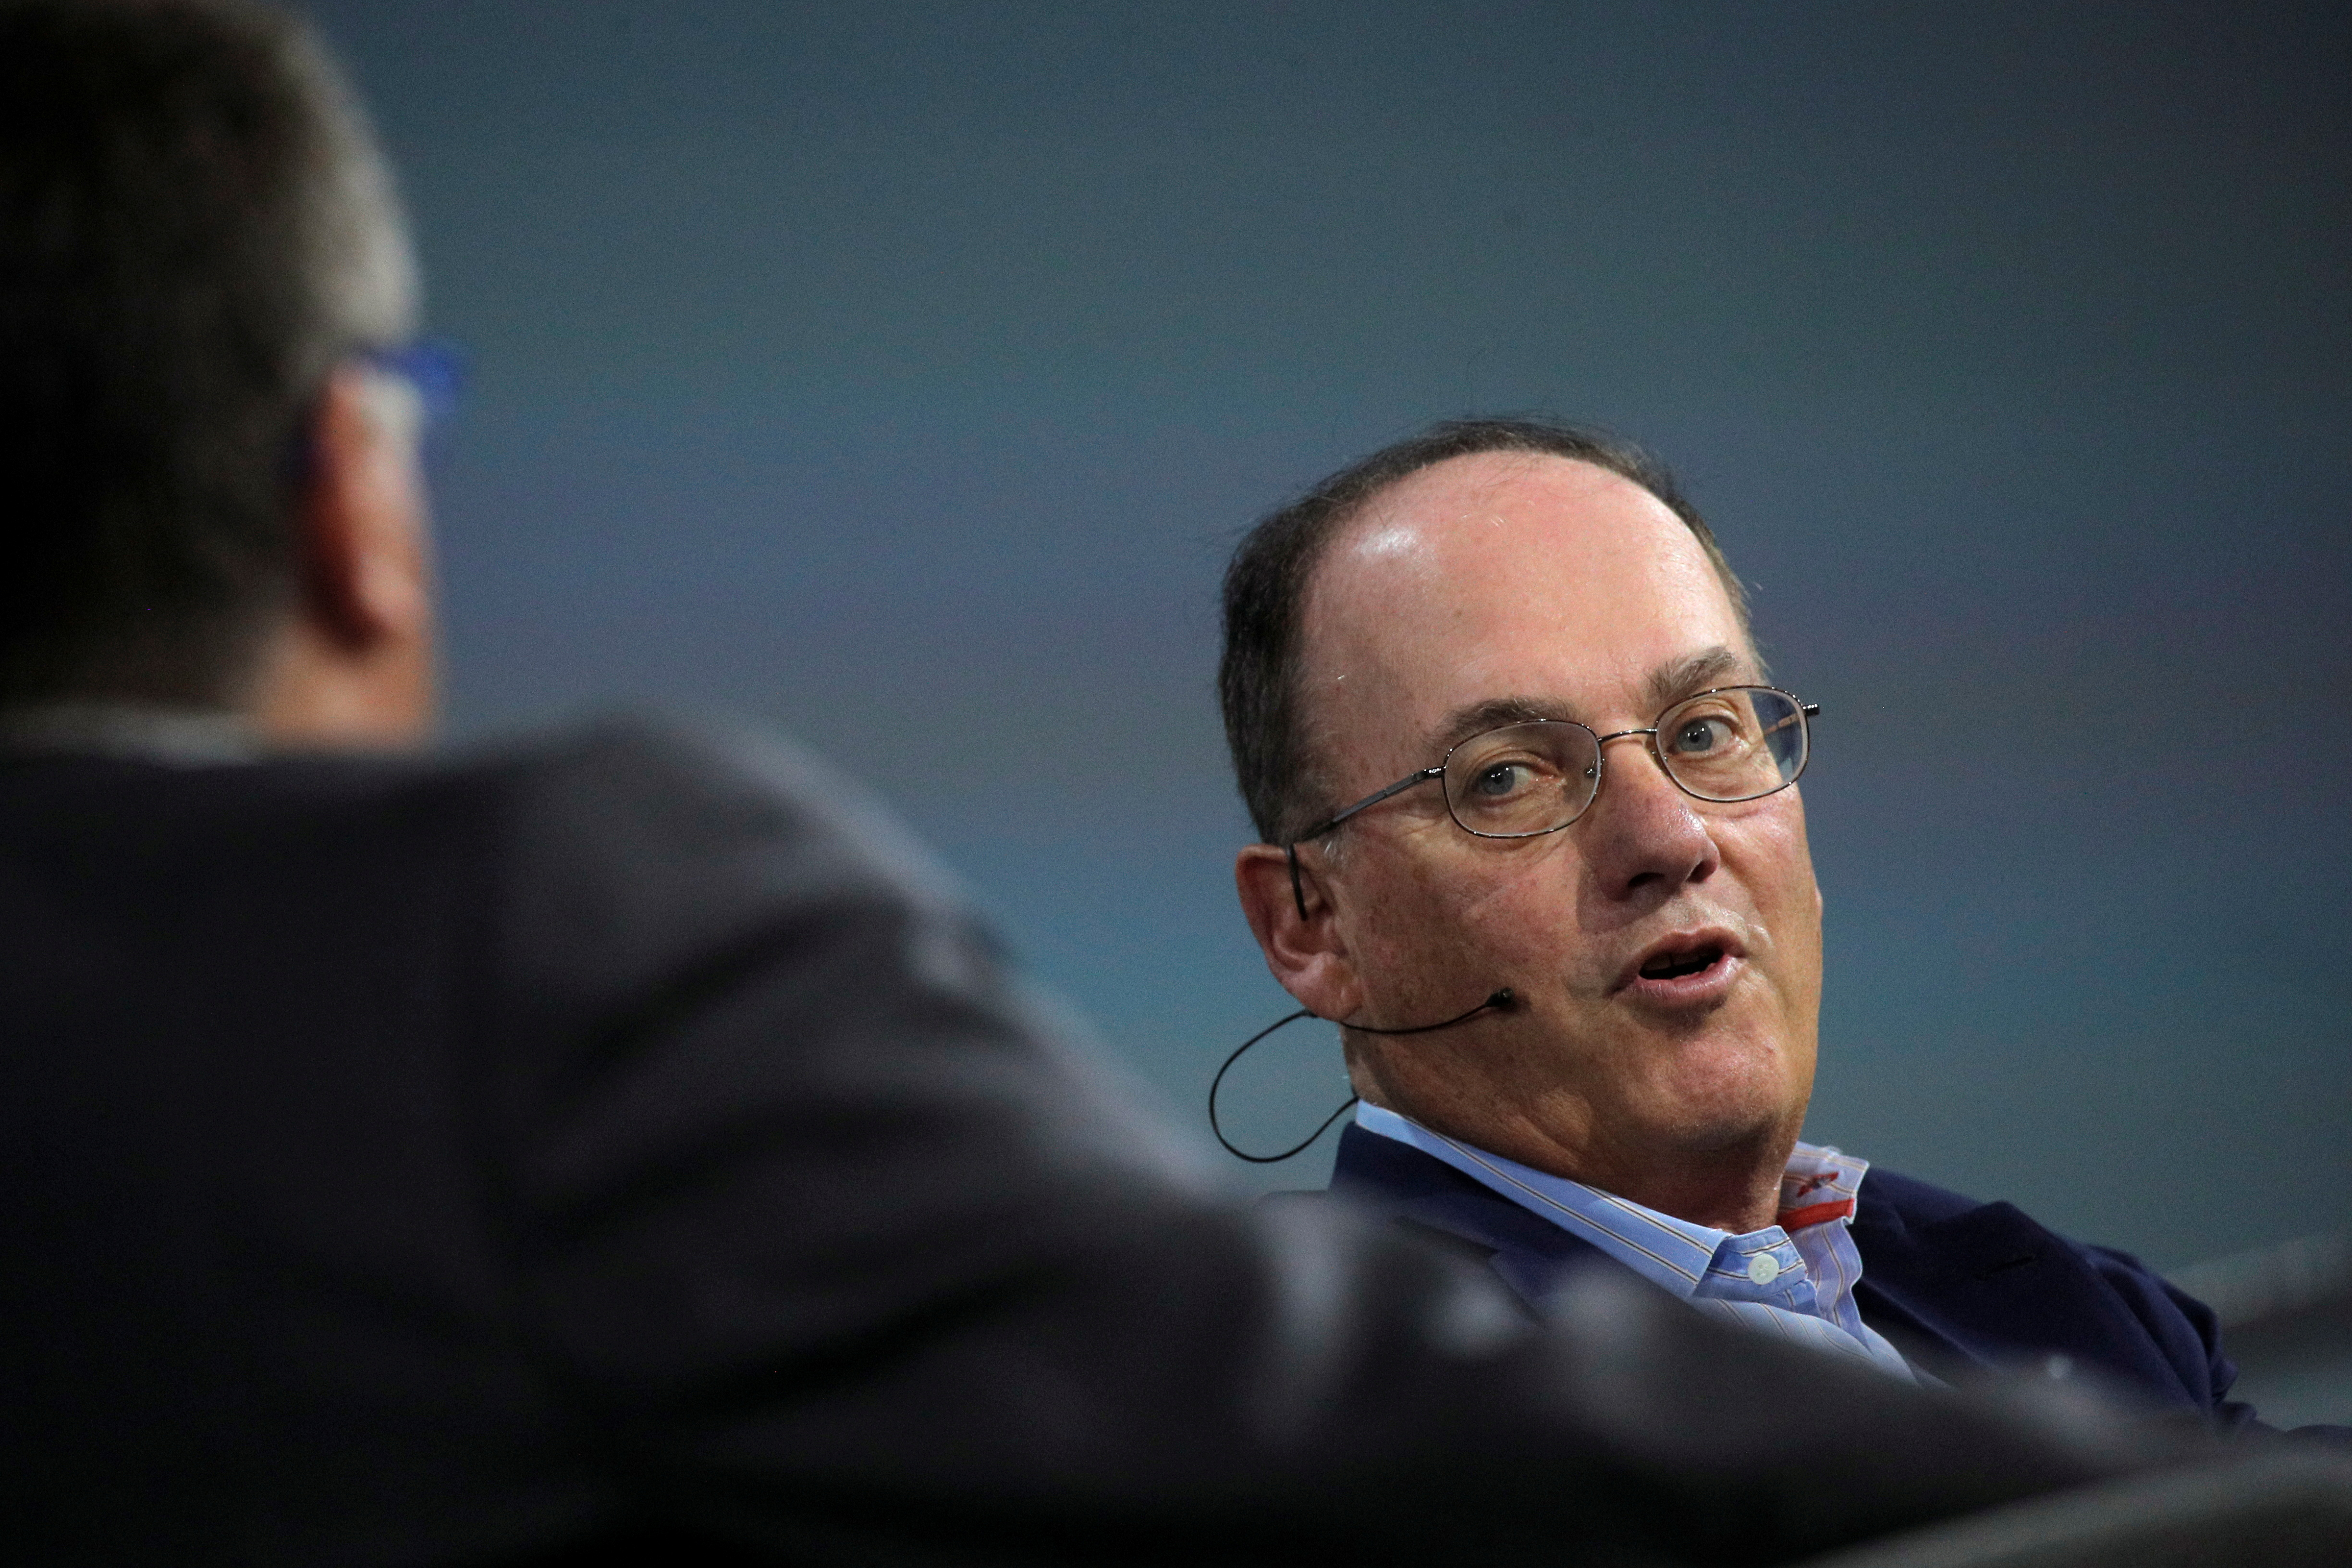 Steven Cohen, Chairman and CEO of Point72 Asset Management, speaks during the Skybridge Capital SALT New York 2021 conference in New York City, U.S., September 13, 2021.  REUTERS/Brendan McDermid/File Photo